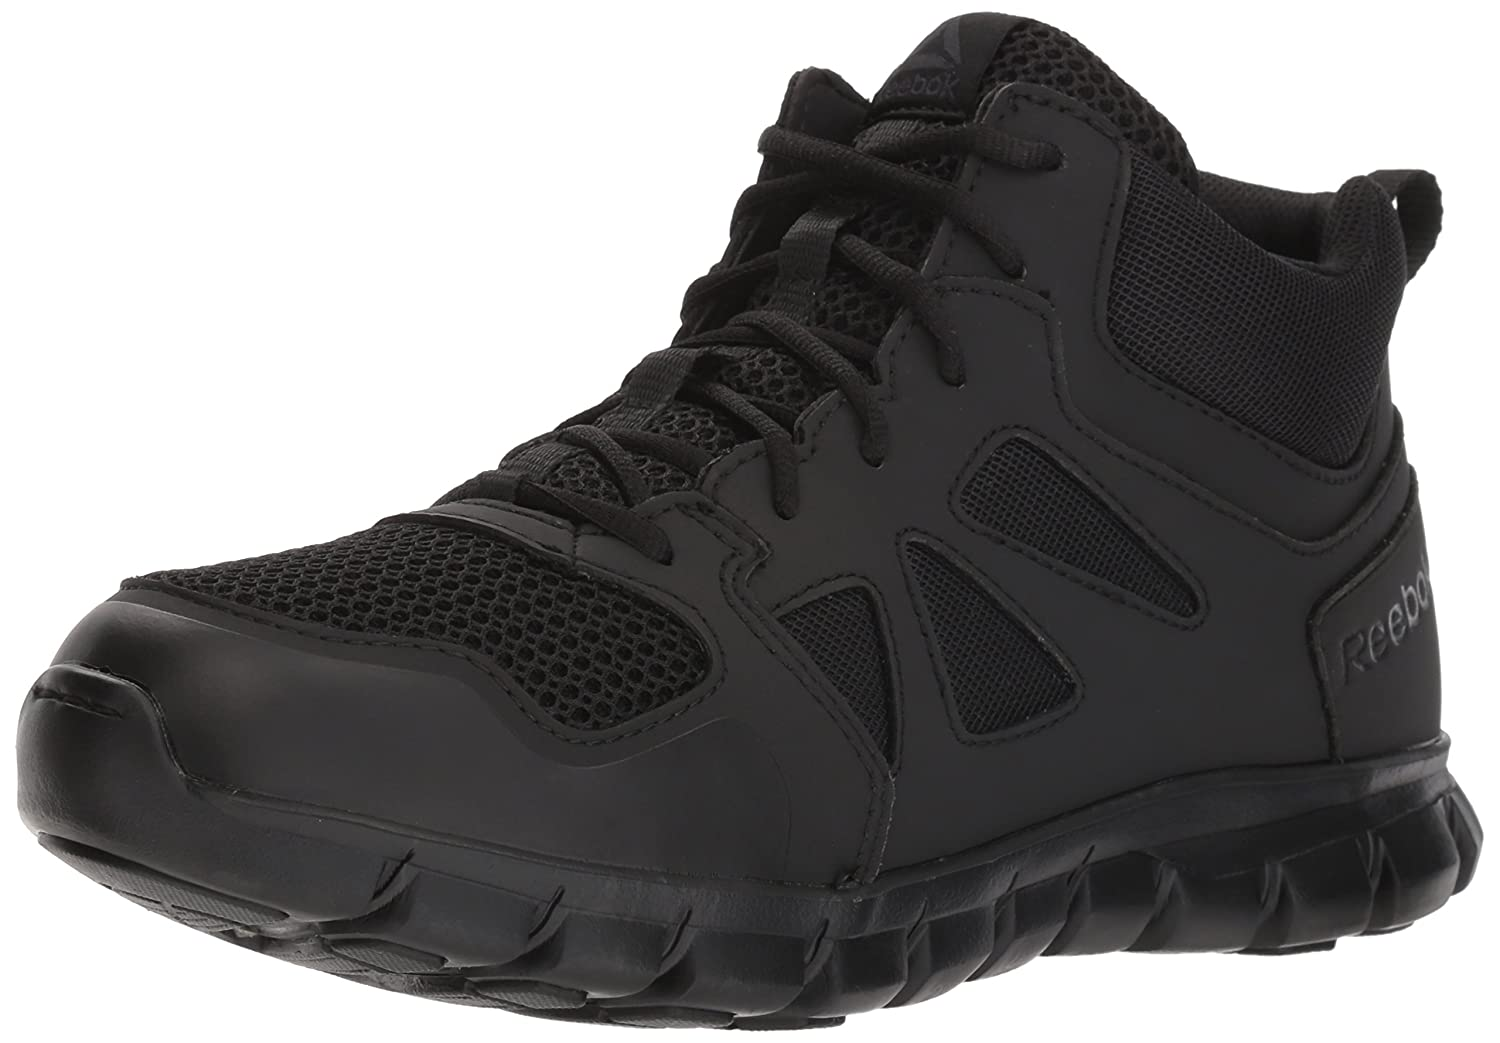 Reebok Men's Sublite Cushion Tactical RB8405 Military Boot Reebok Work